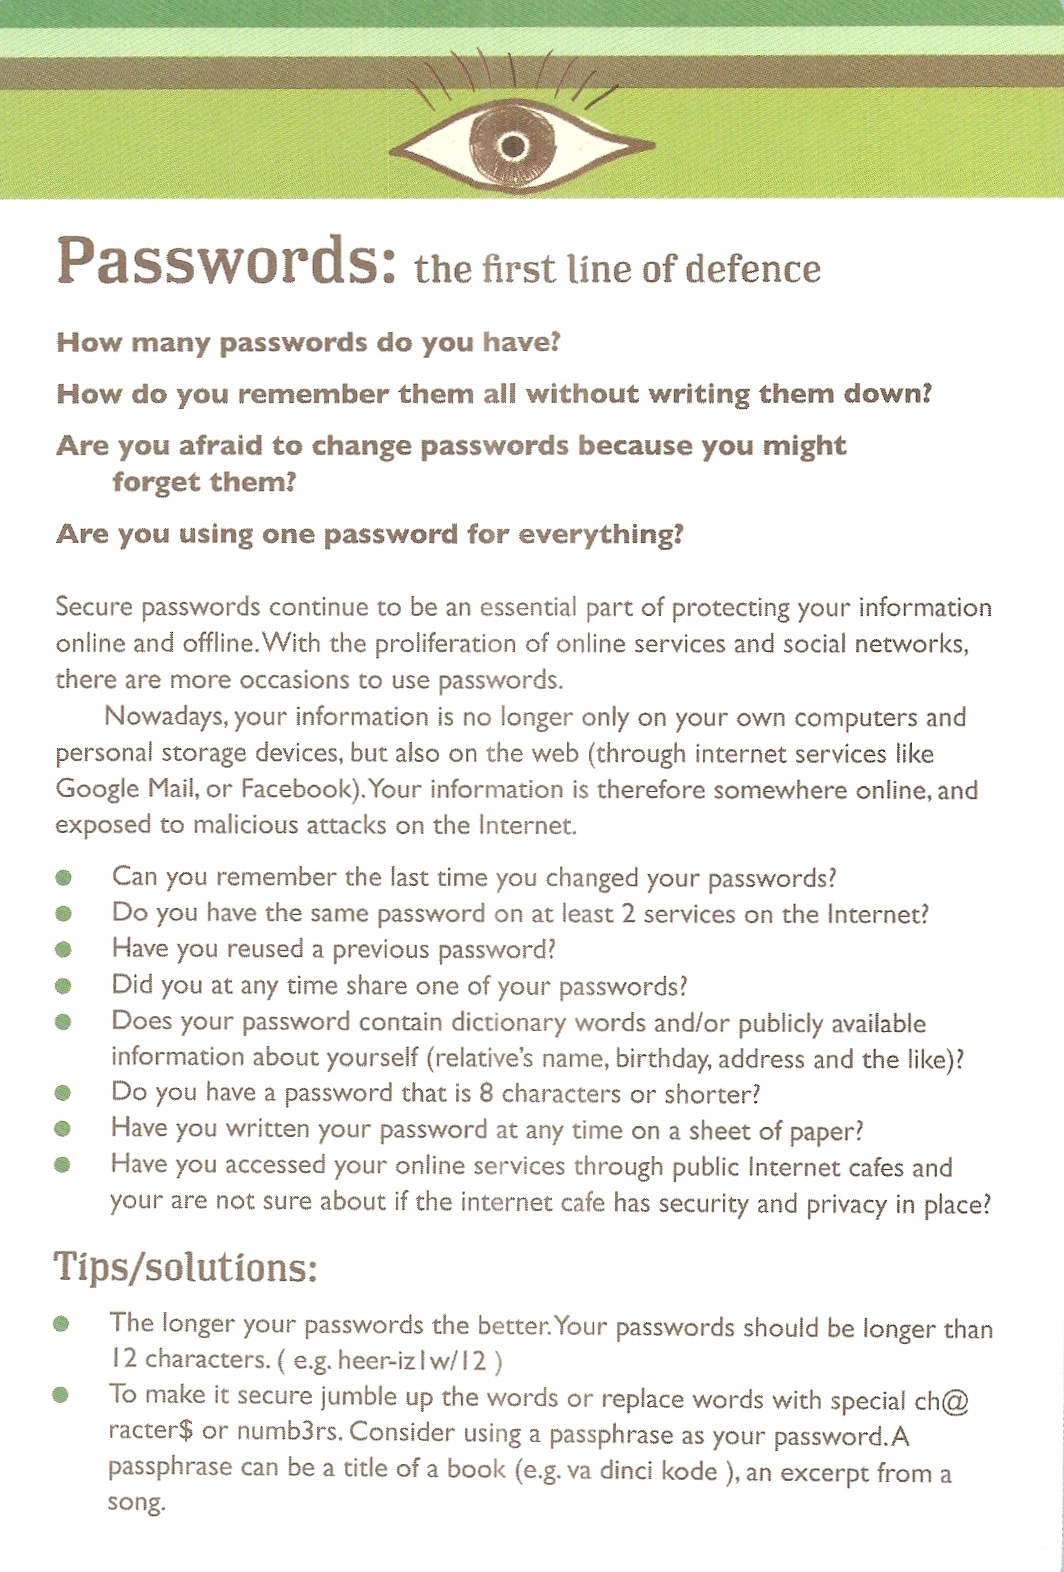 Passwords11